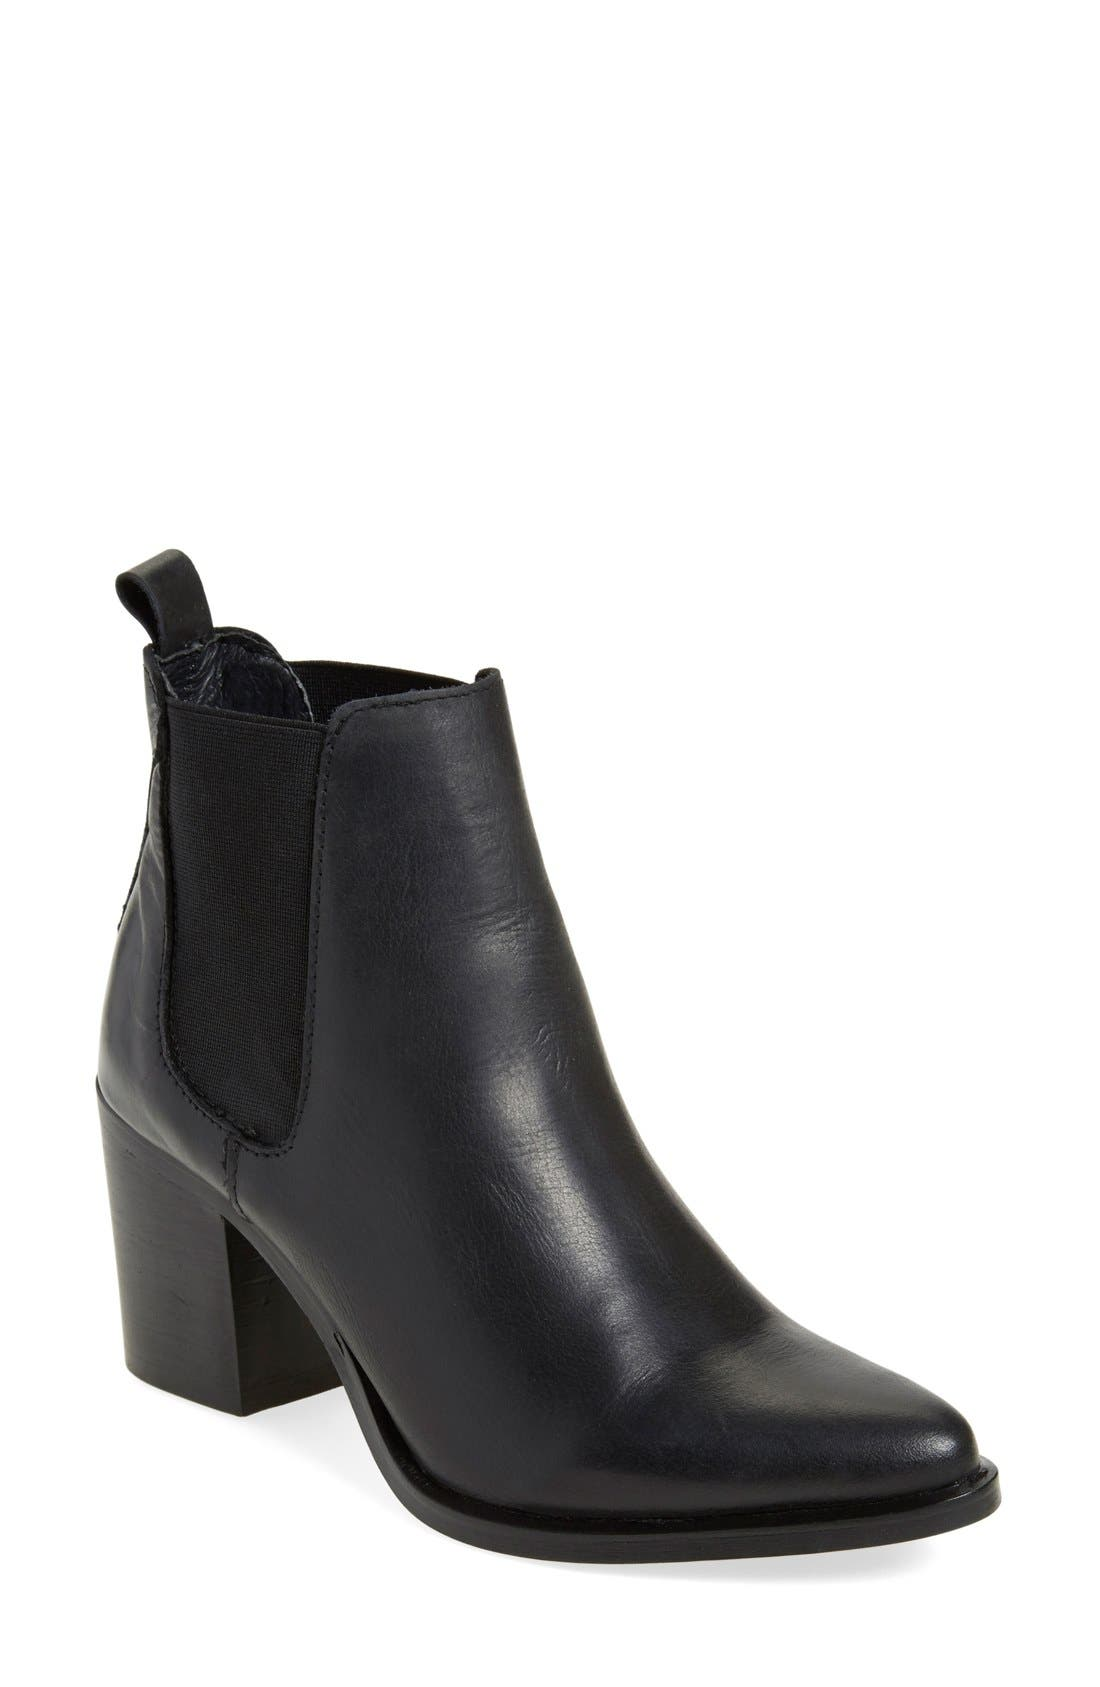 Alternate Image 1 Selected - Steve Madden 'Pistol' Bootie (Women)